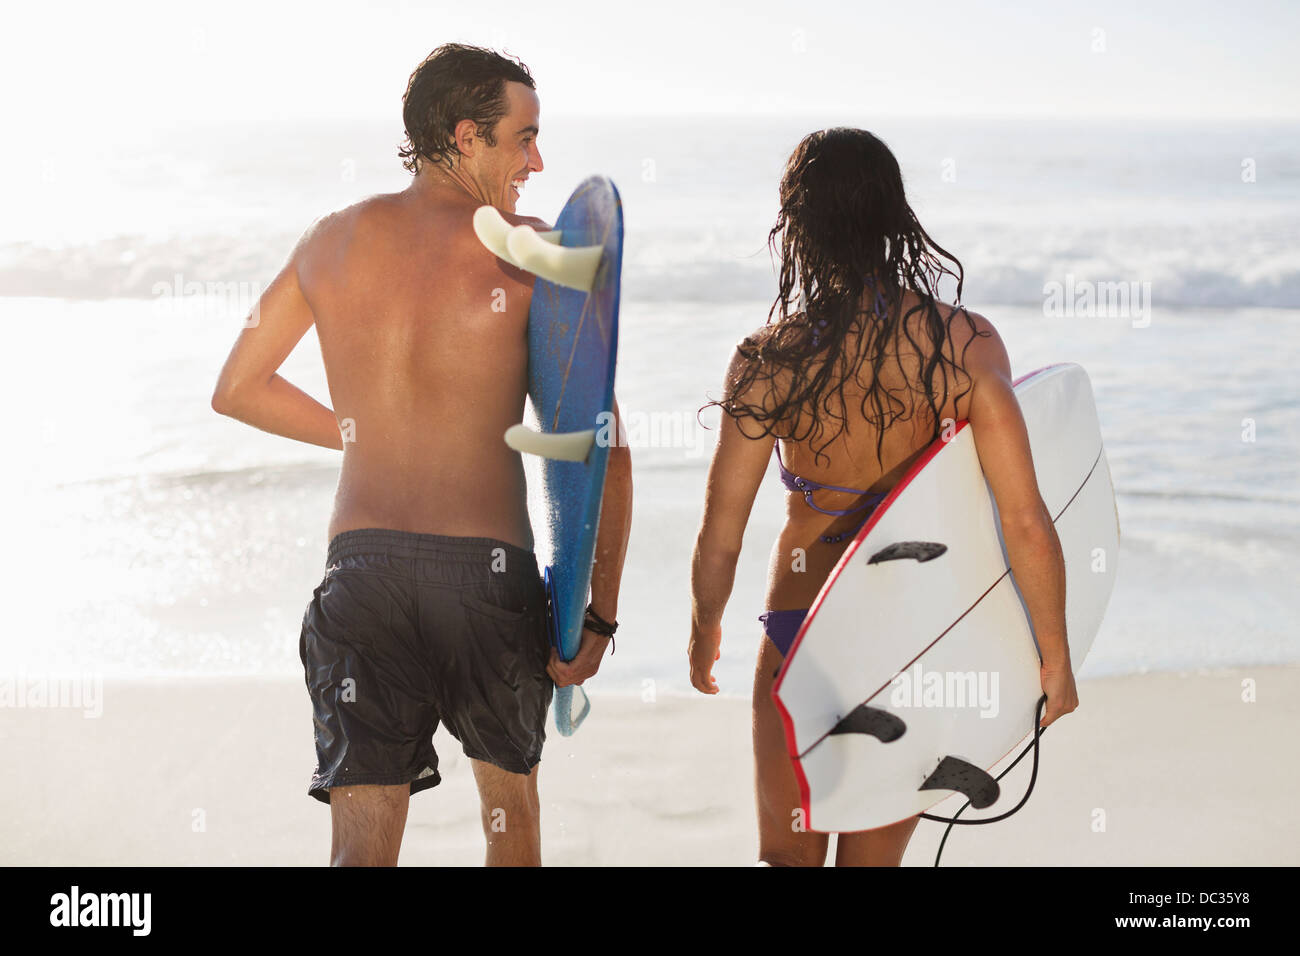 Couple walking with surfboards on beach - Stock Image